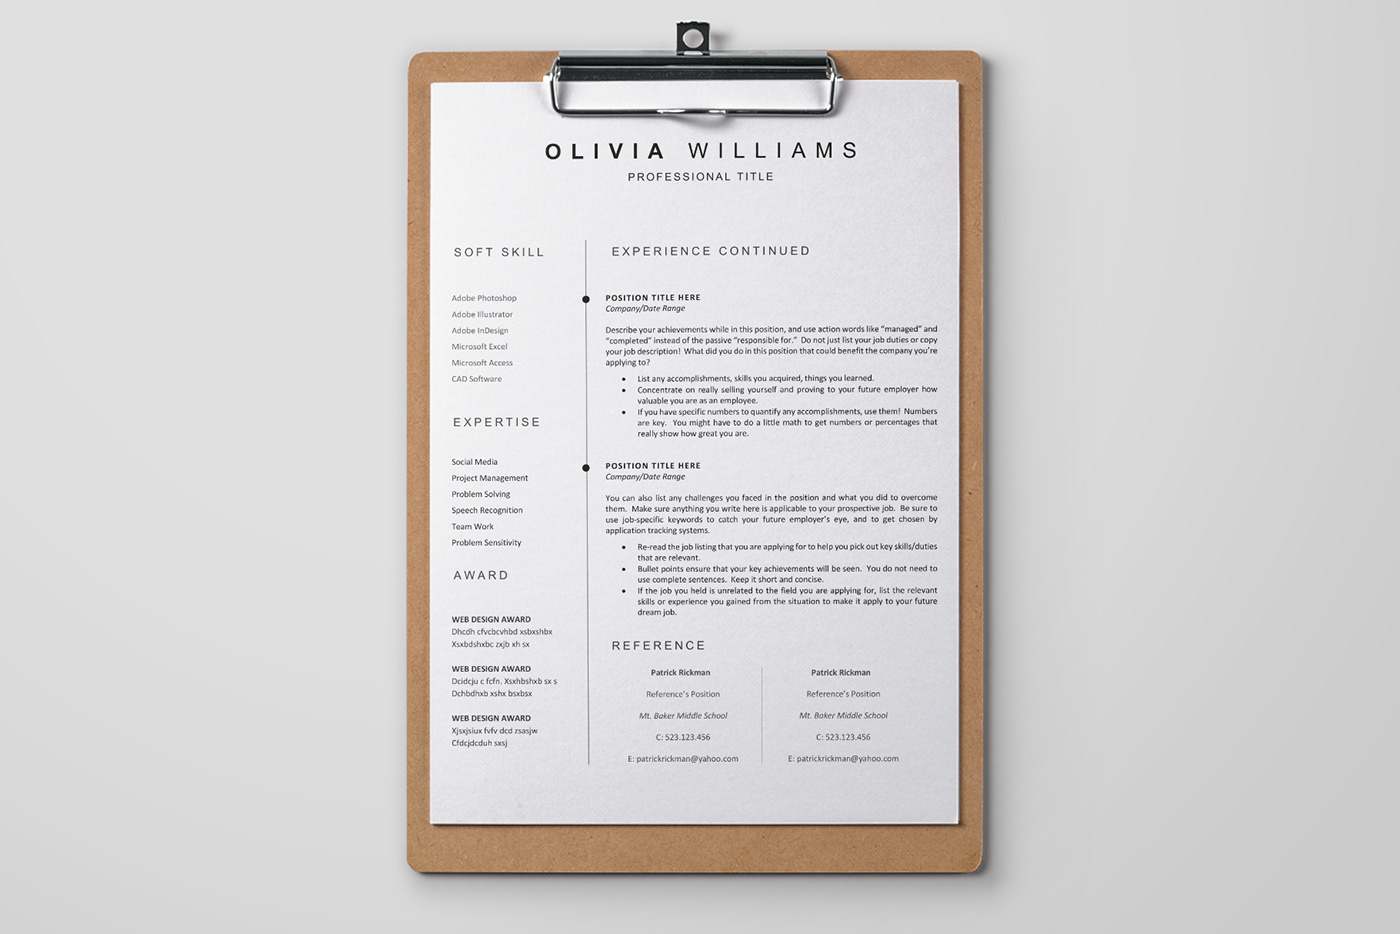 clean cover letter clean resume cover letter CV free freebie PROFESSIONAL RESUME Resume resume template template